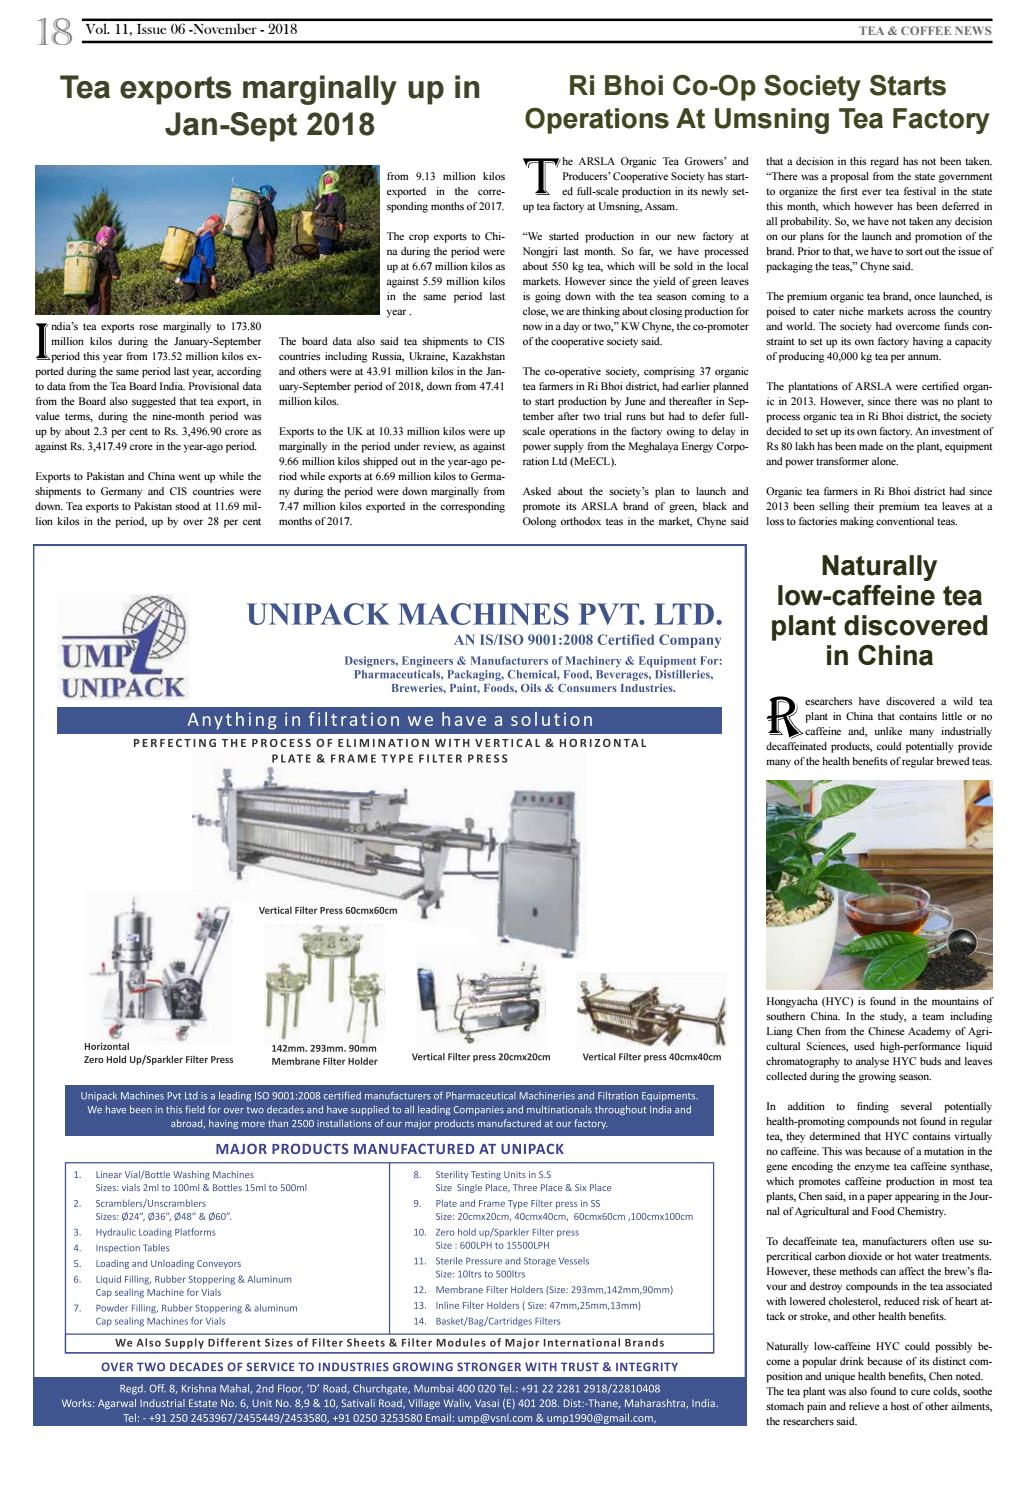 Beverages & Food Processing November 2018 by Advance Info